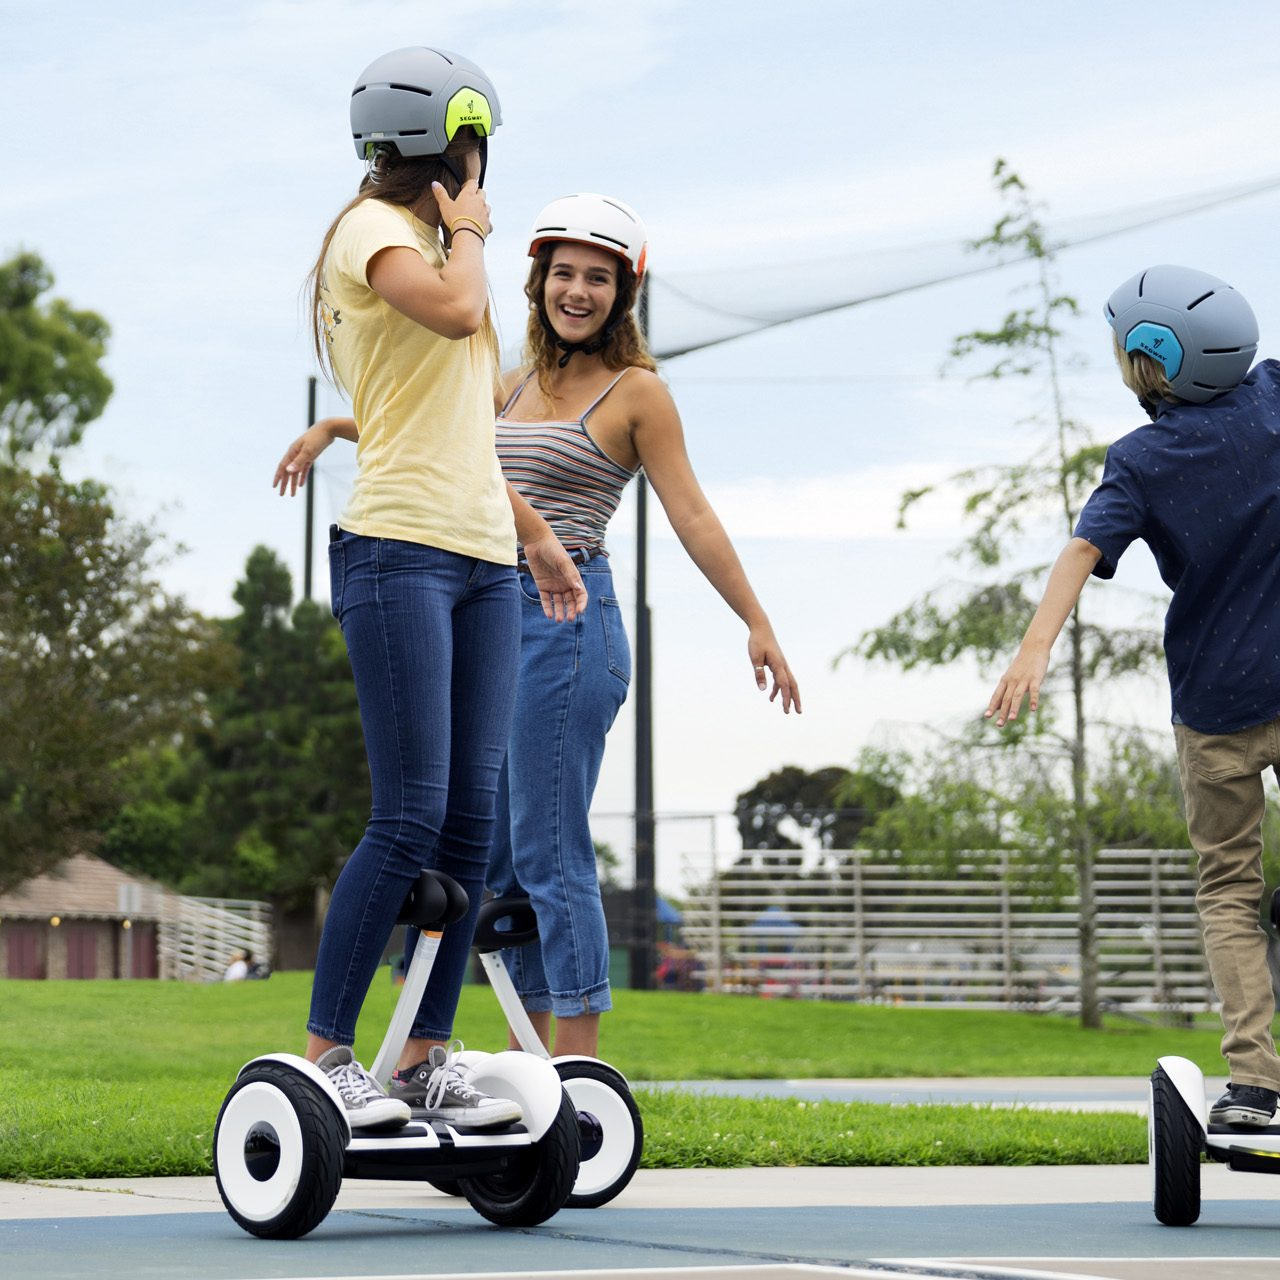 Hoverboard miniLITE at Forester city